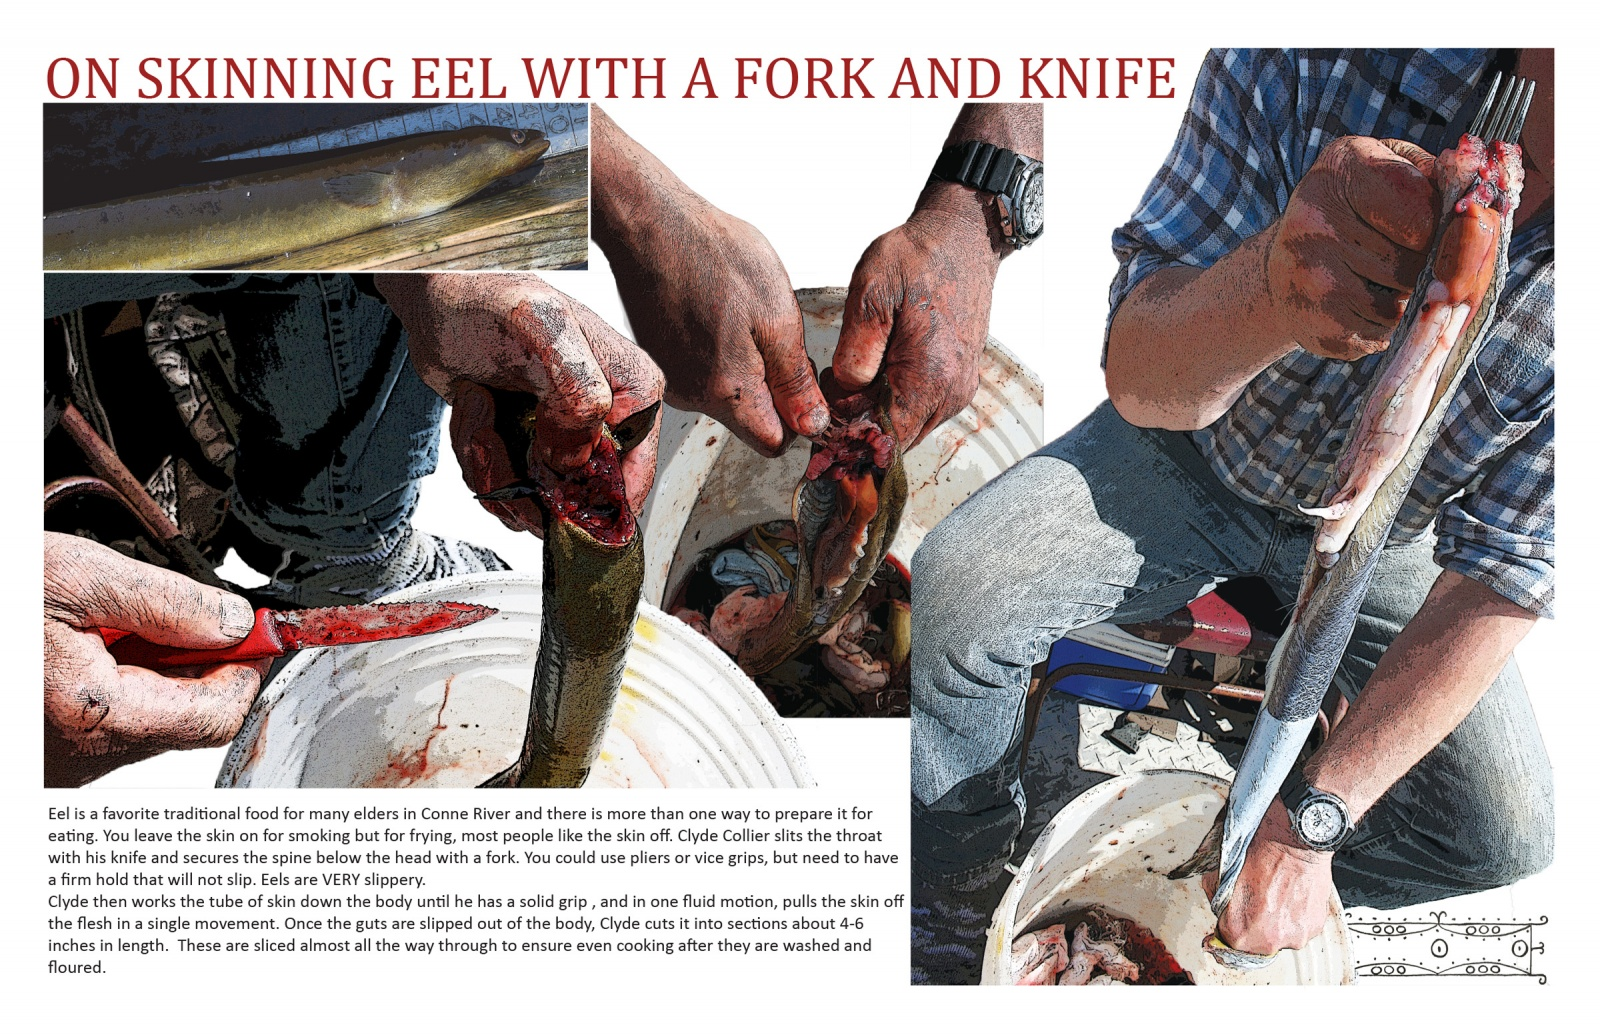 On Skinning Eel With a Fork and Knife